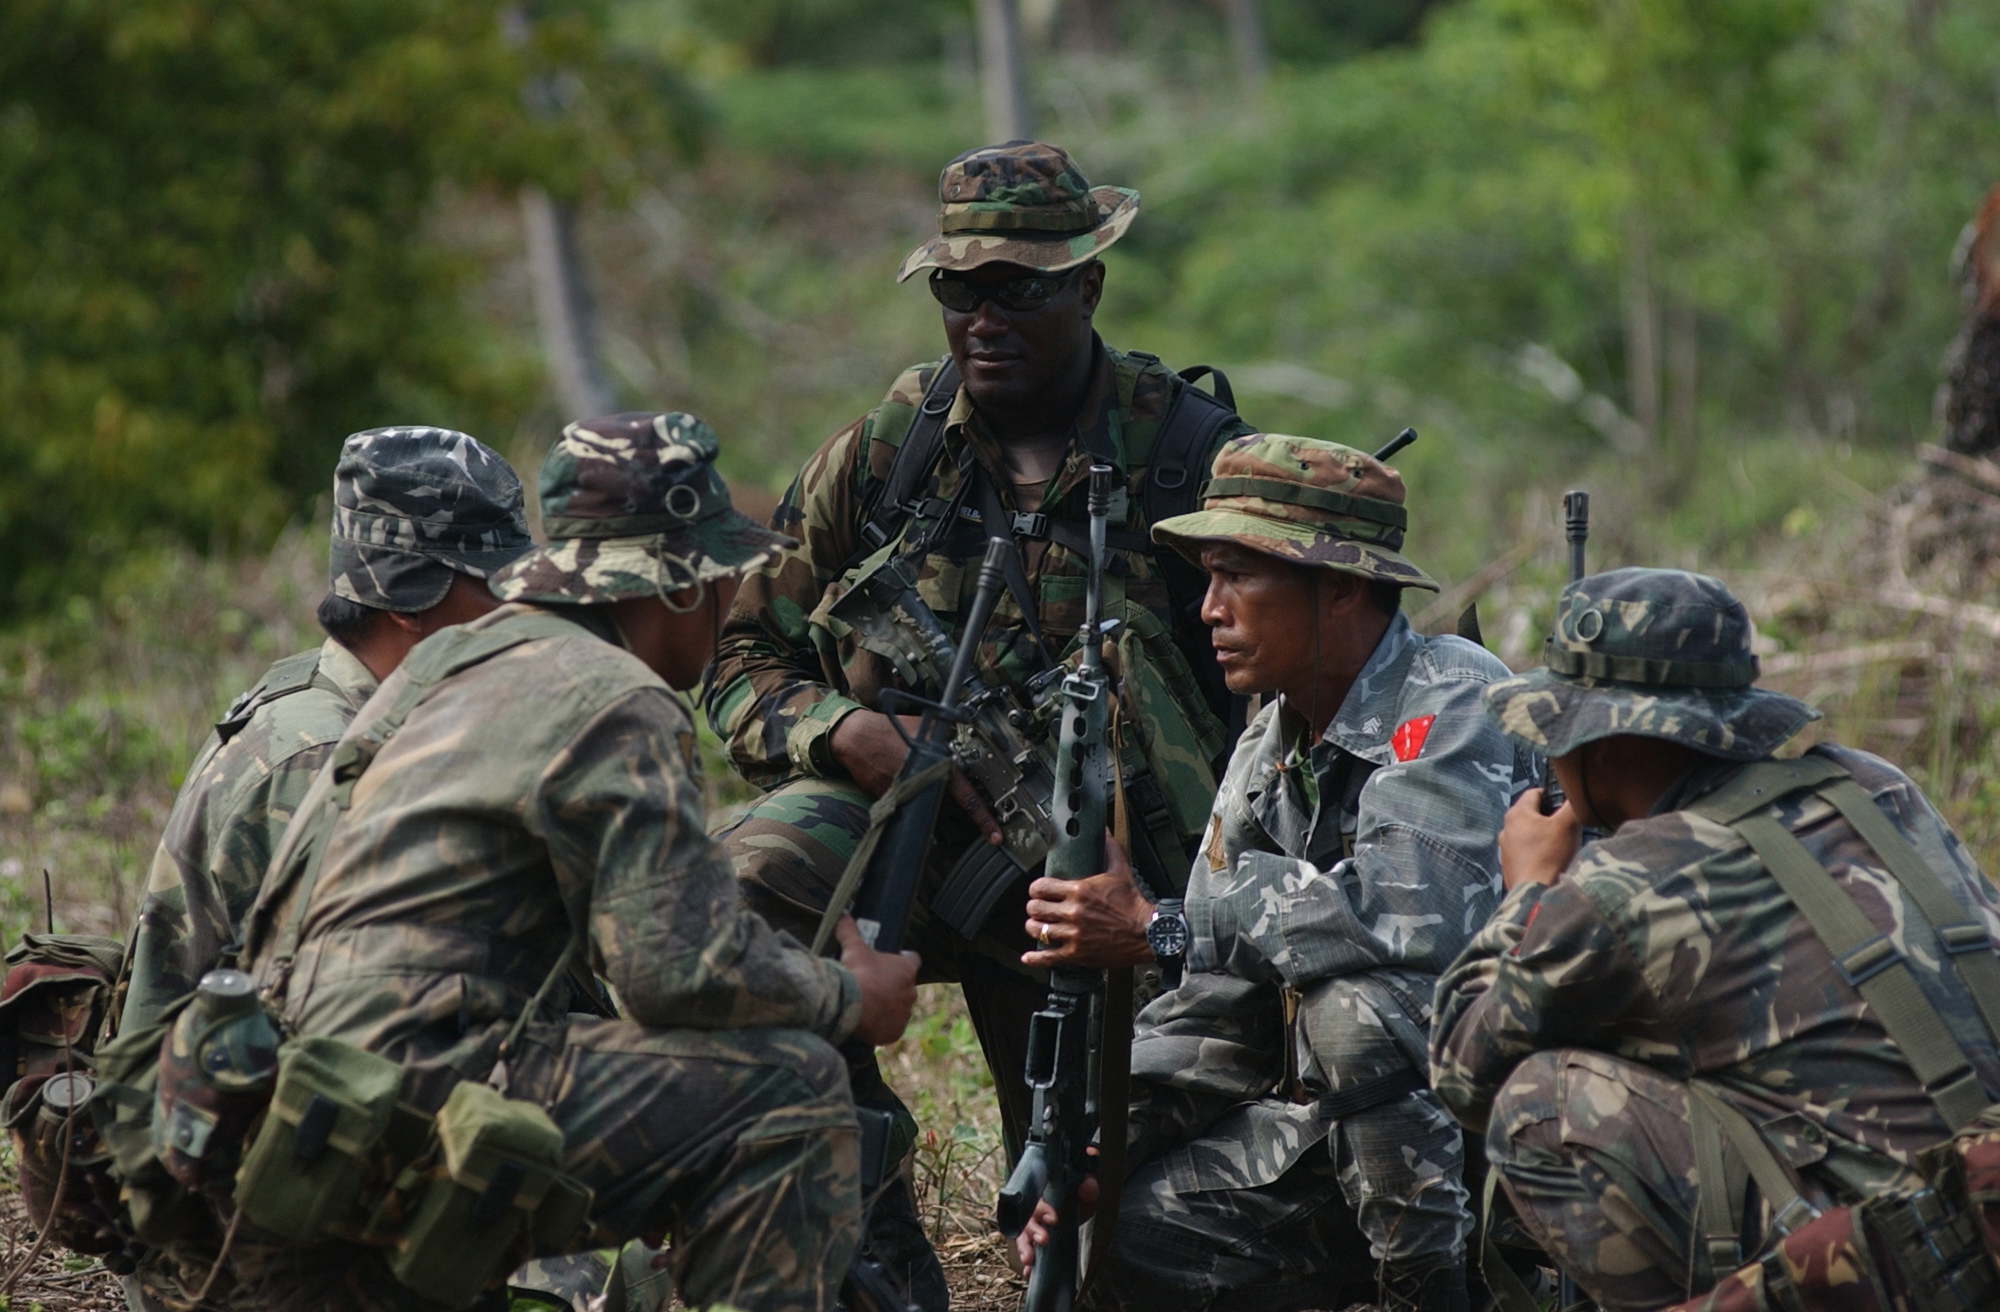 communist insurgency in the philippines history essay Shedden papers philippines 2010 and beyond:  response to the ongoing communist insurgency in the country  the modern history of the philippines is littered .